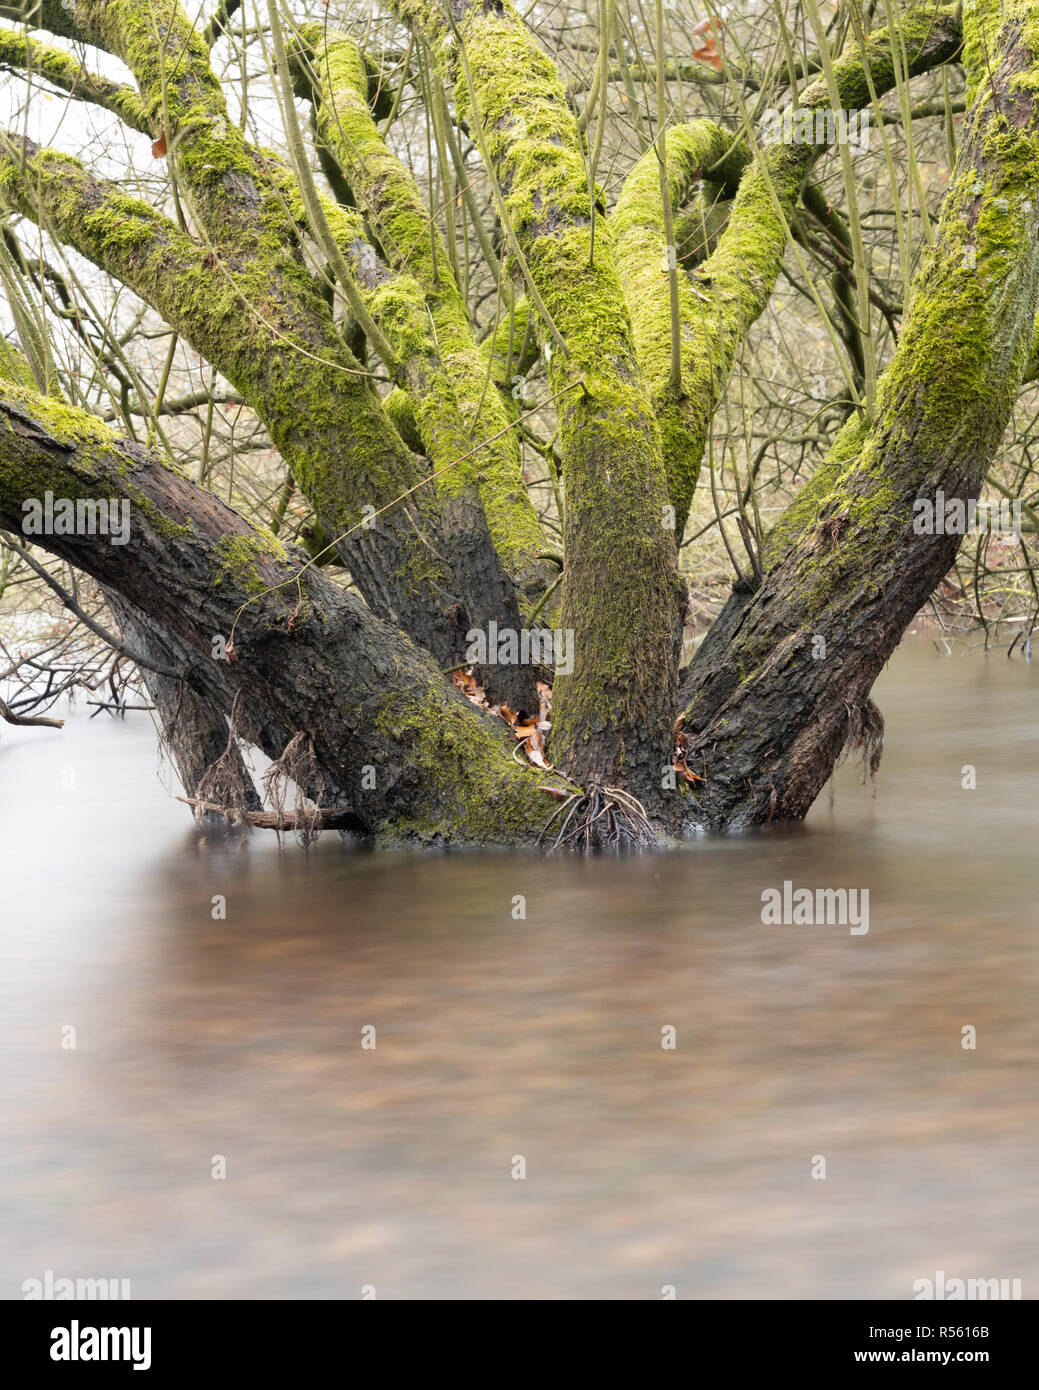 Wet Woodland - using ND filters to blur the water around the base of these flooded trees - Stock Image